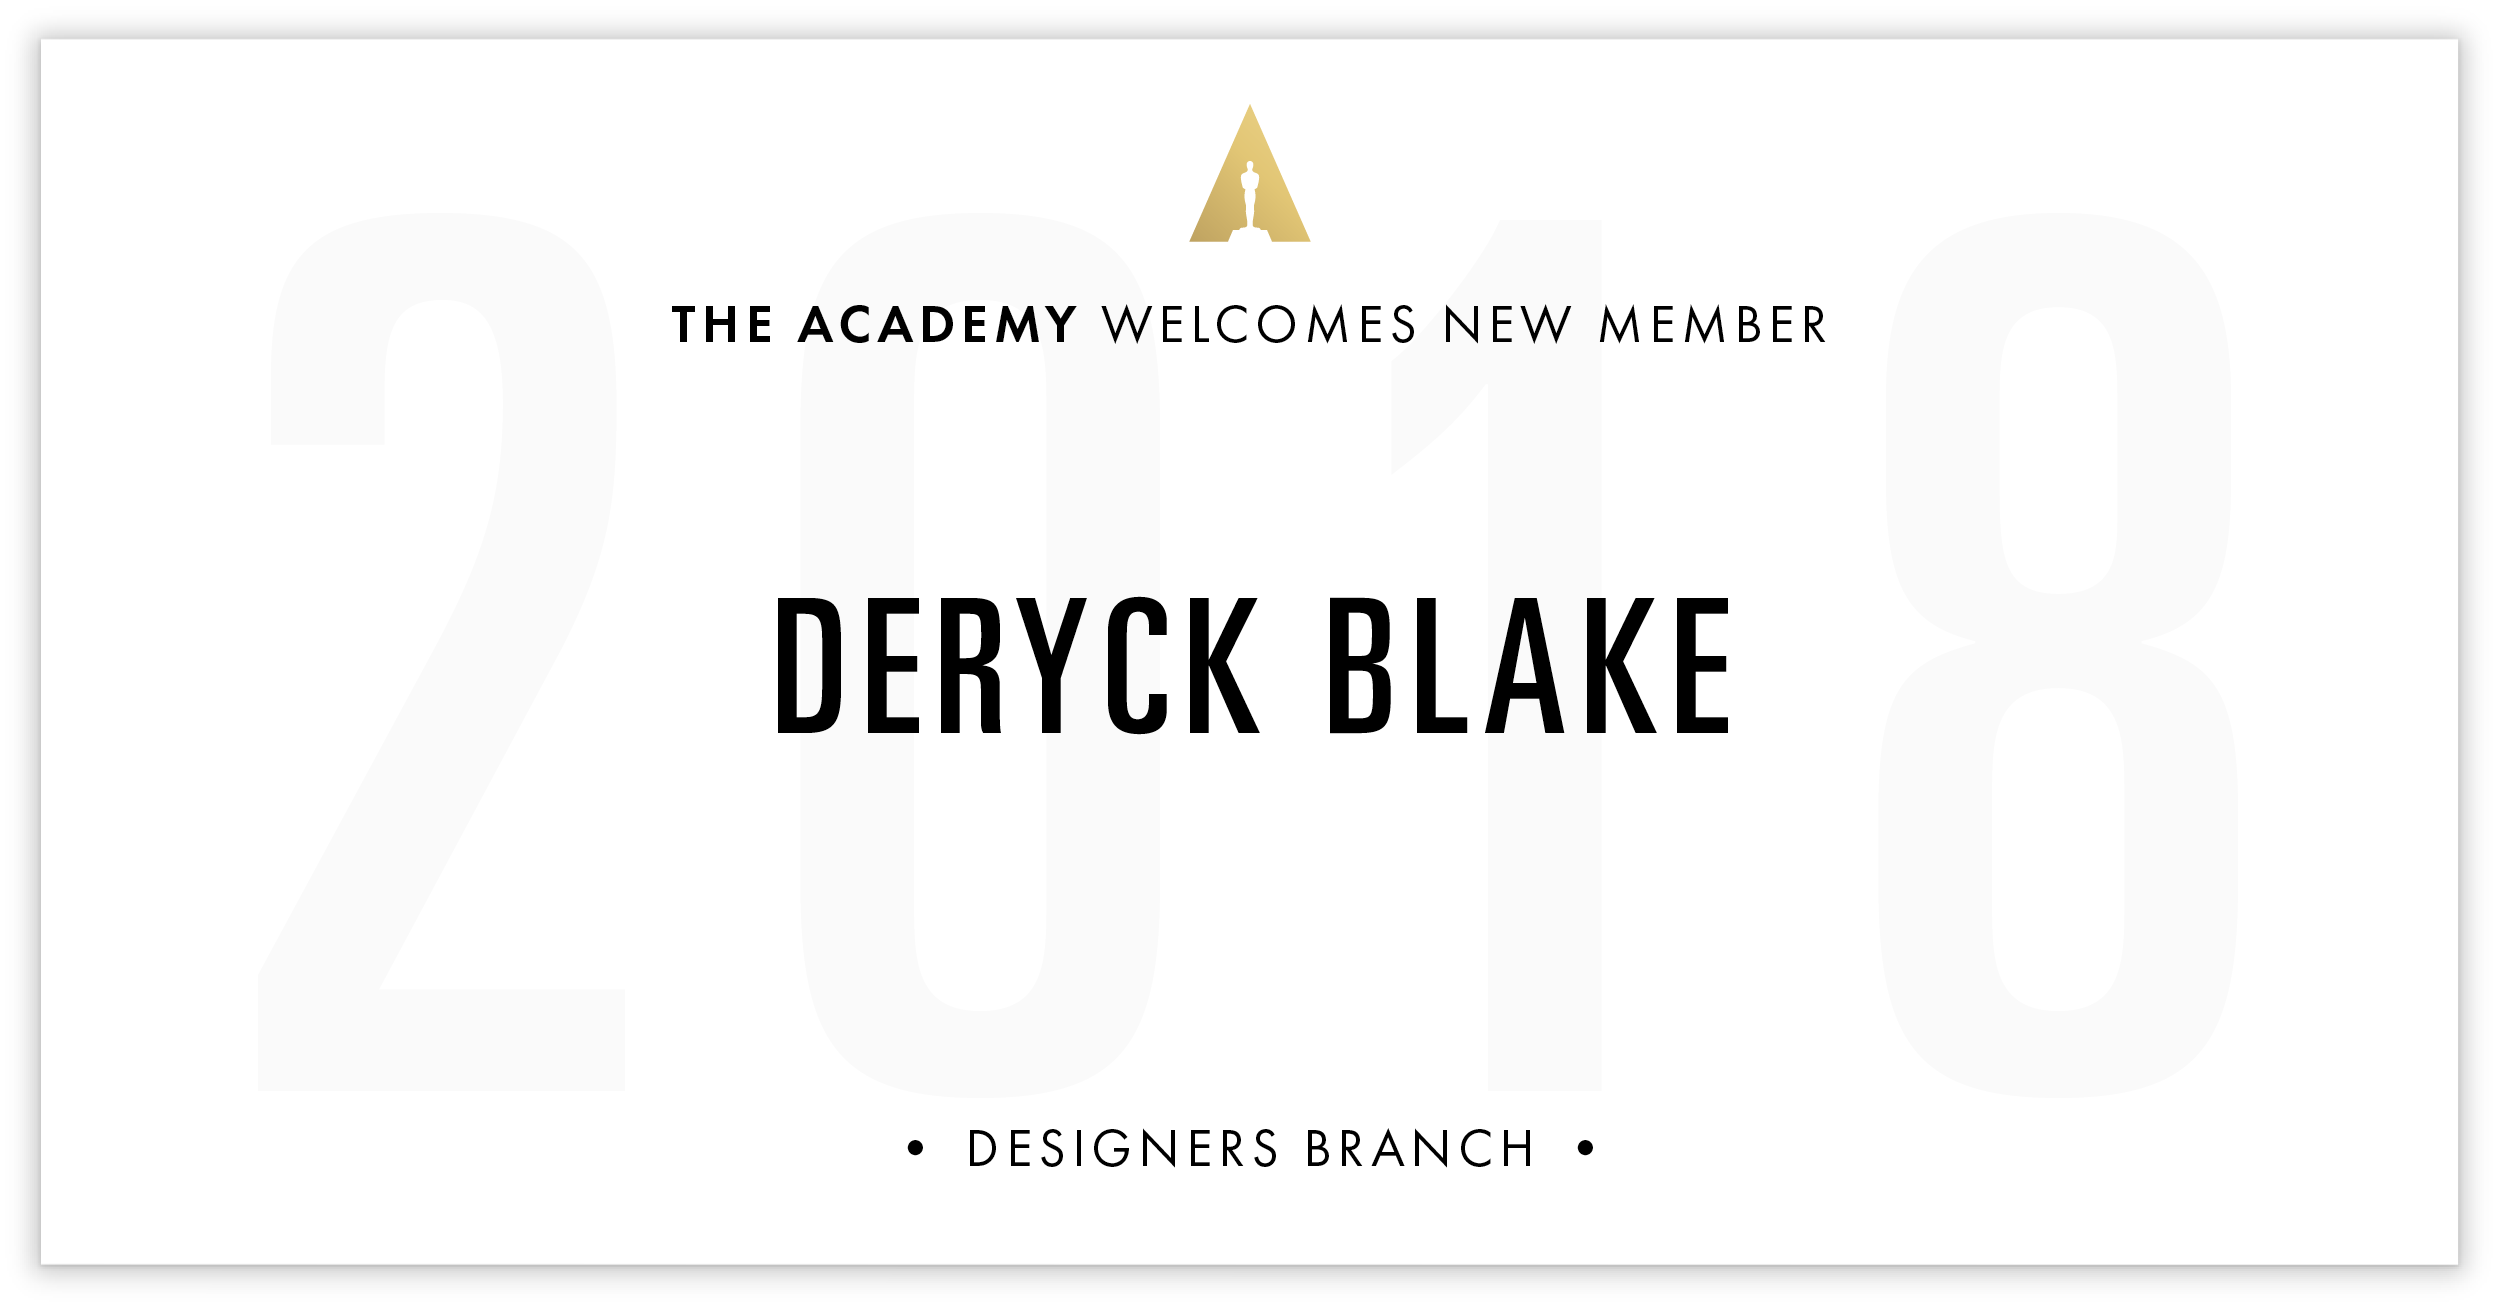 Deryck Blake is invited!